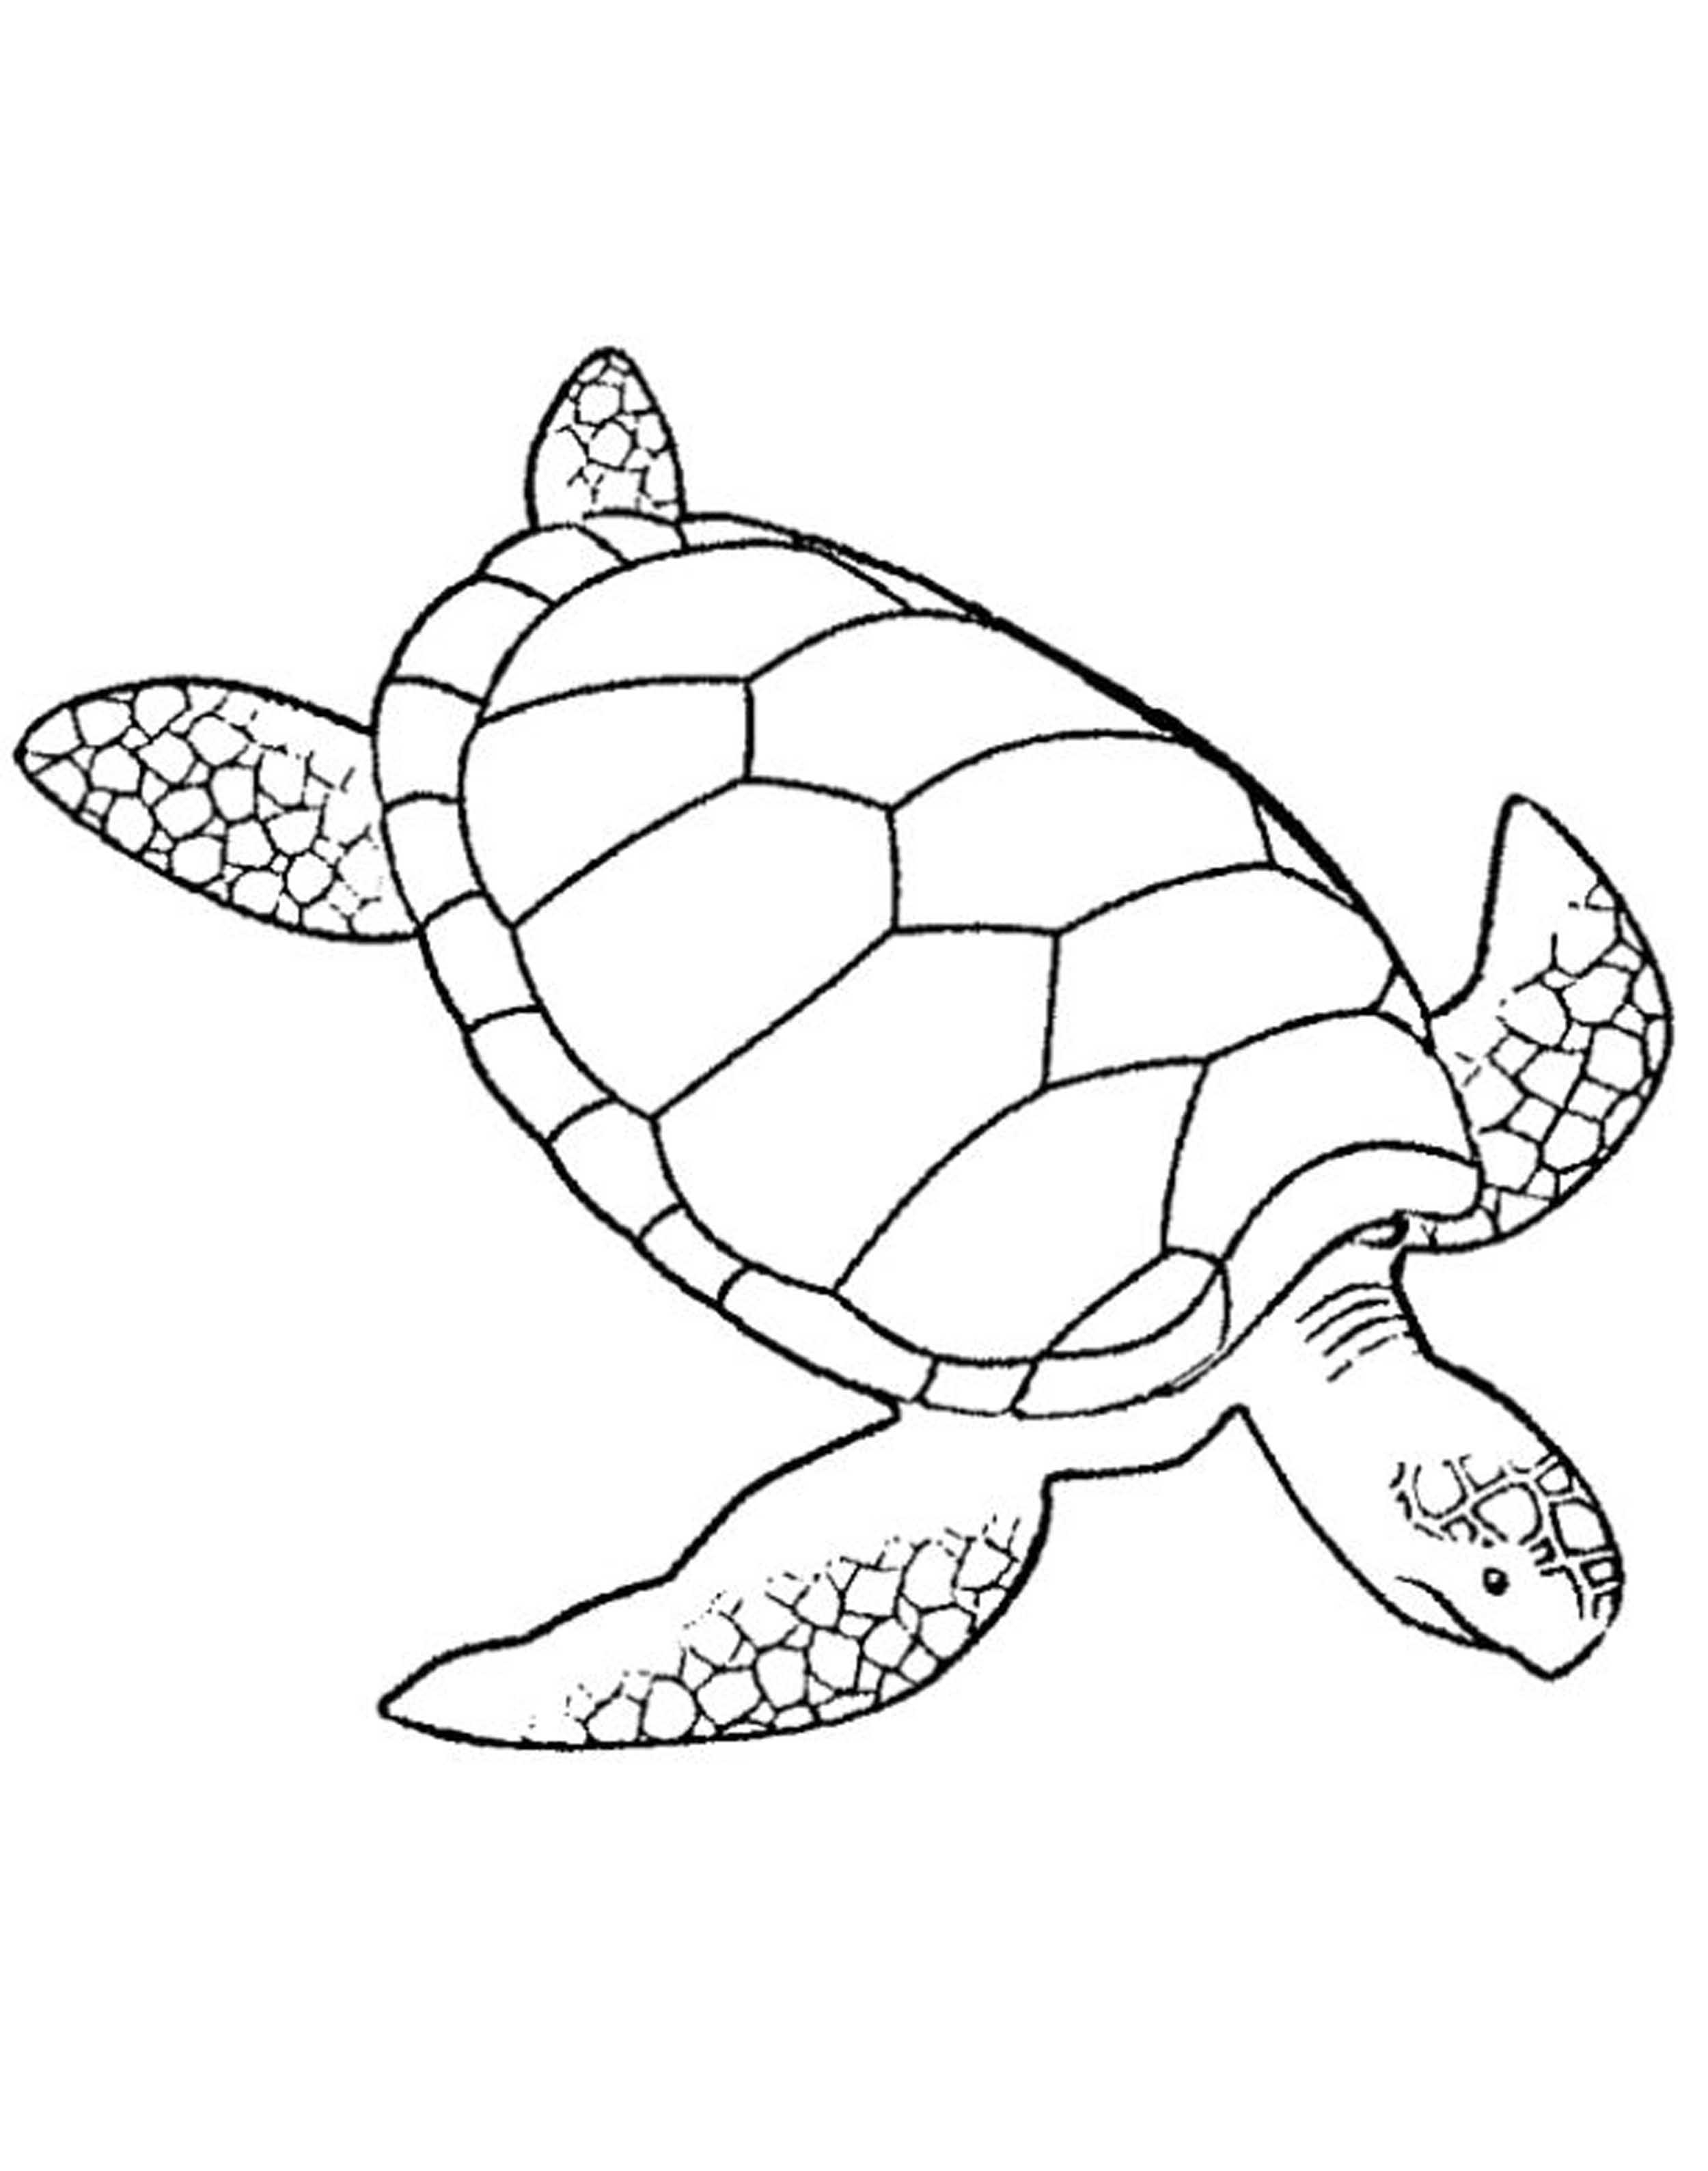 turtle pictures for coloring print download turtle coloring pages as the turtle pictures coloring for